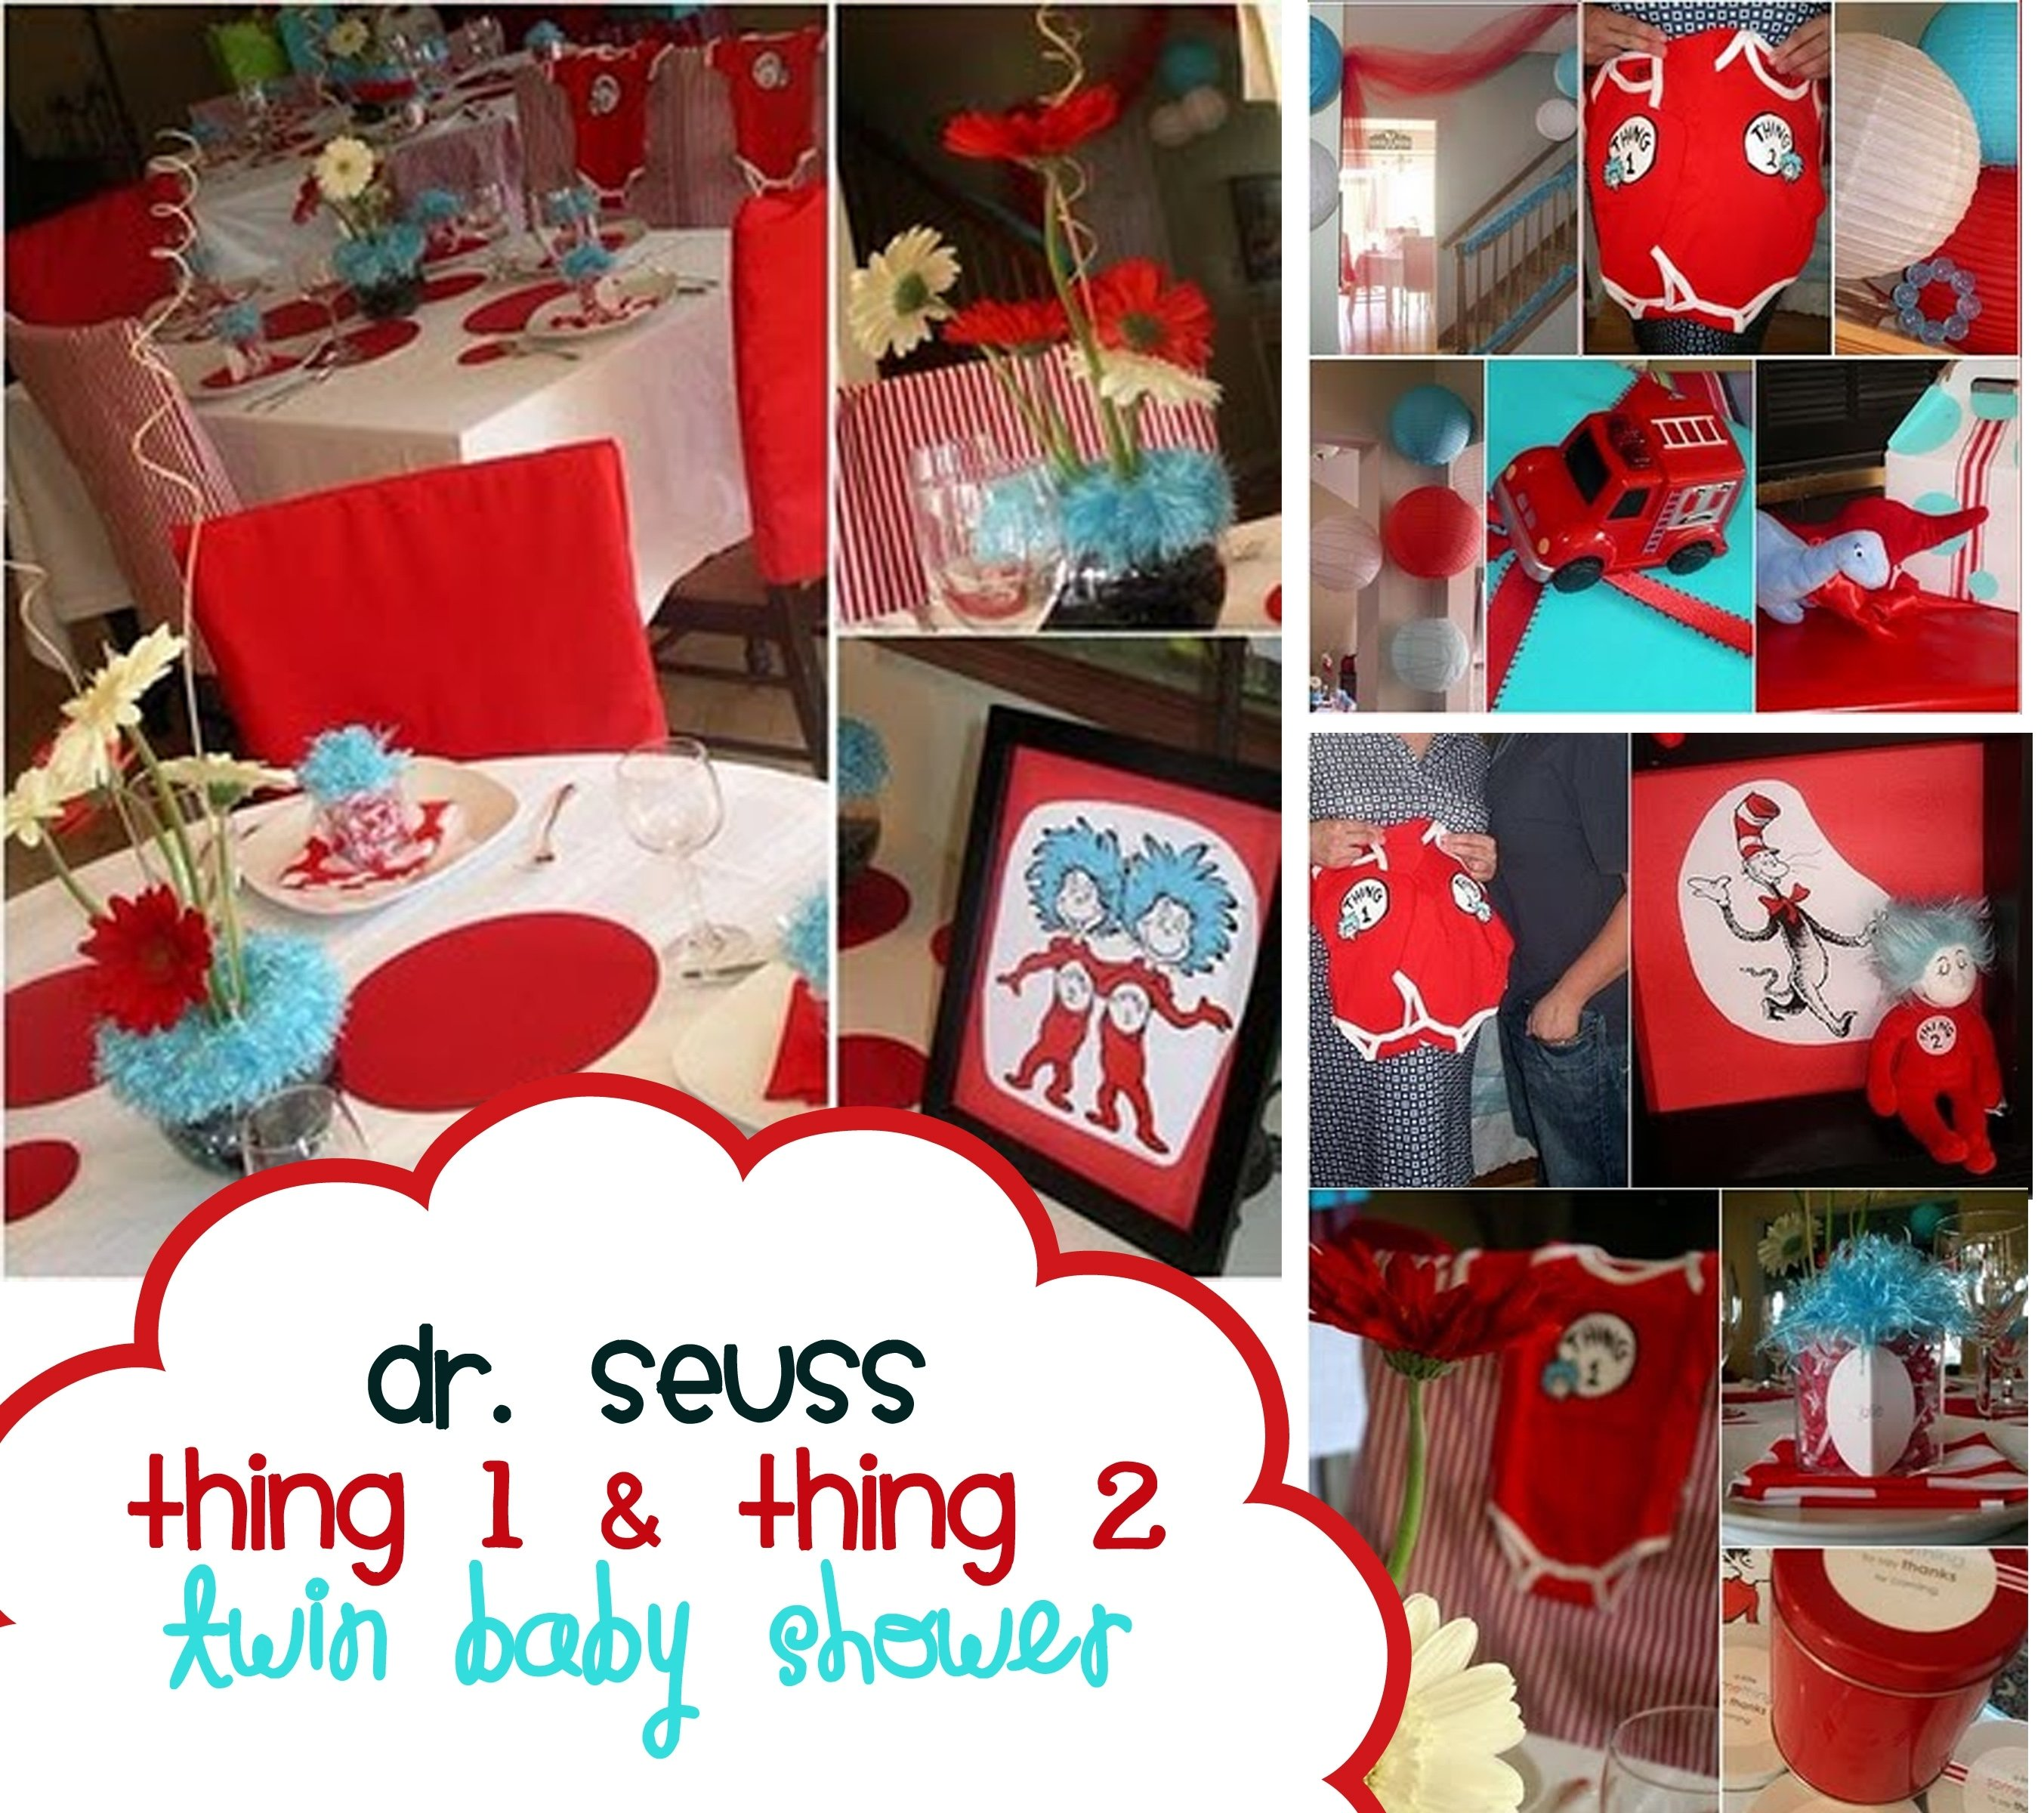 10 Elegant Ideas For Twin Baby Shower dr suess baby shower bing images party on pinterest dr 2021